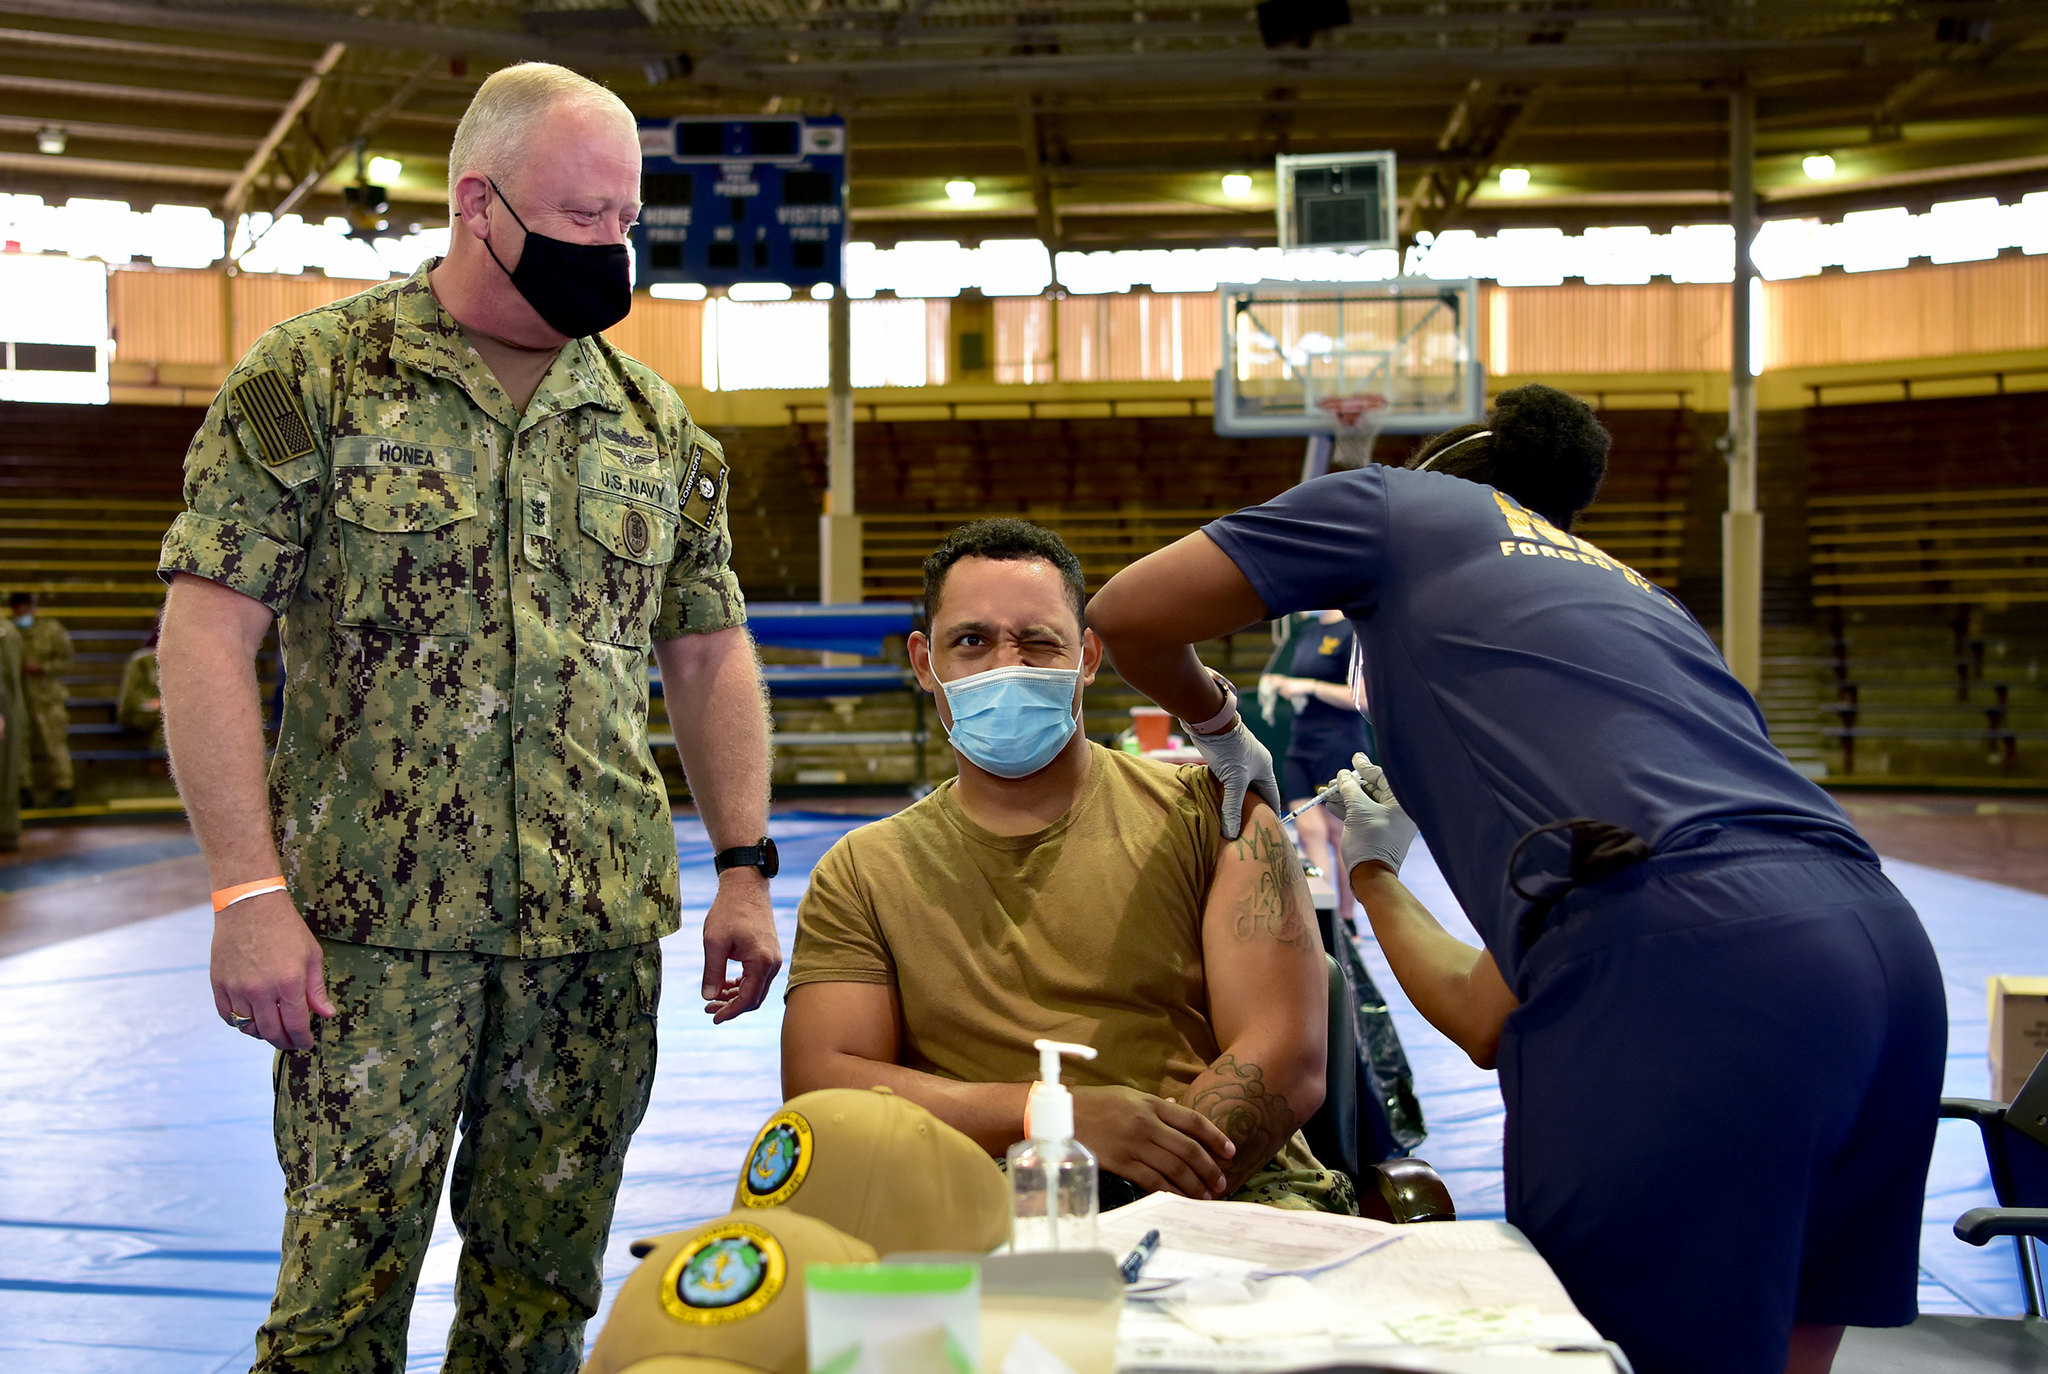 Master-at-Arms 1st Class Patrick Moore receives the COVID-19 vaccine as U.S. Pacific Fleet Fleet Master Chief James Honea observes at Joint Base Pearl Harbor-Hickam, Dec. 29, 2020. (Chief Mass Communication Specialist Jay C. Pugh/Navy)